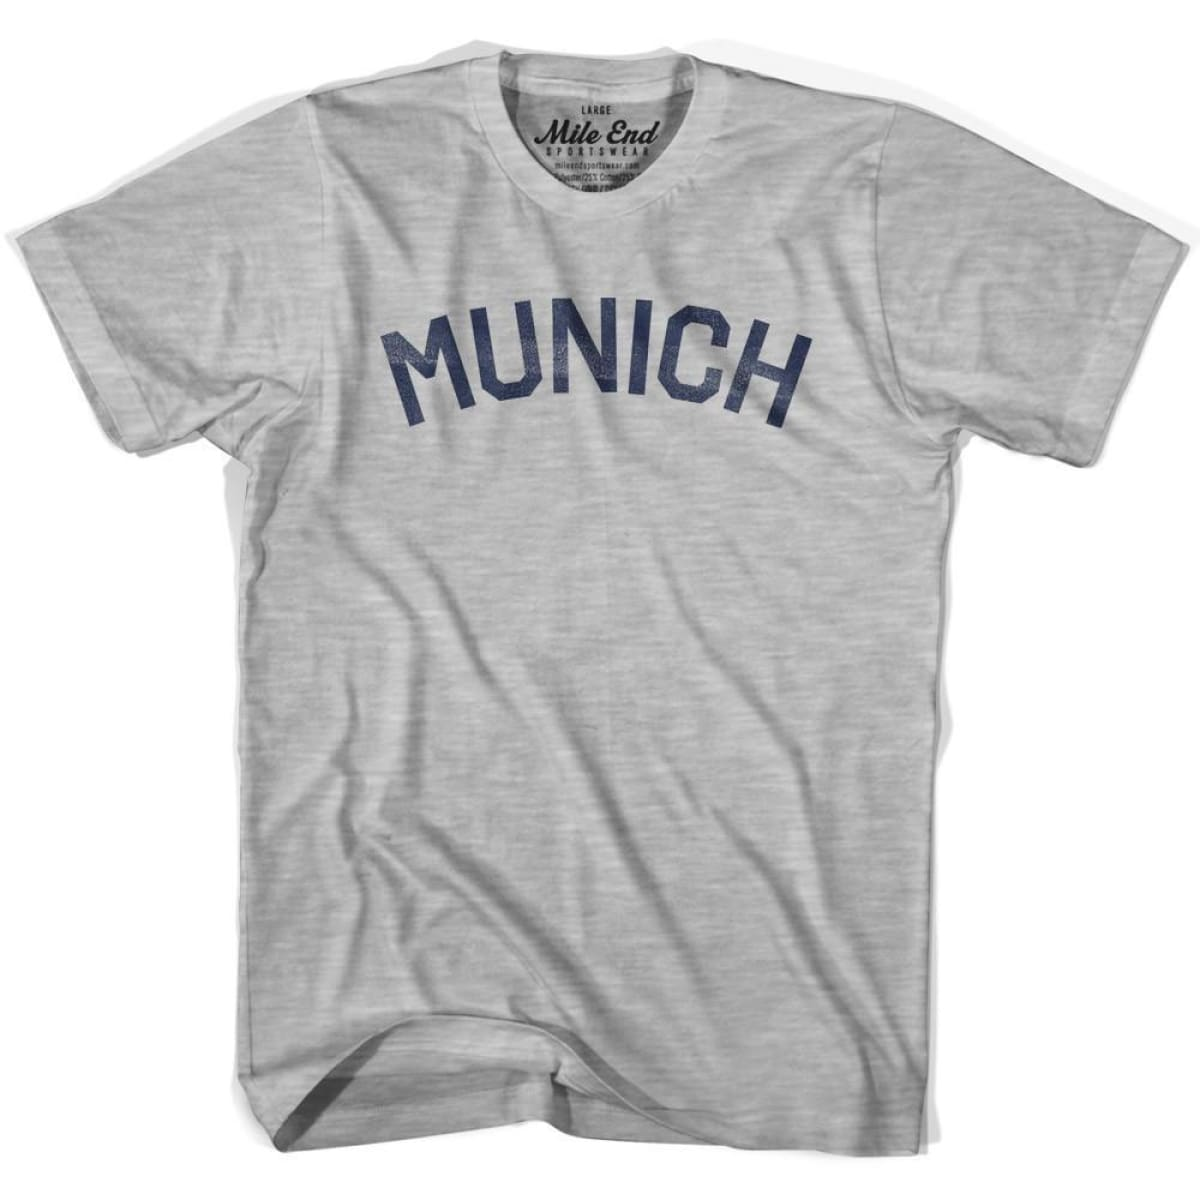 Munich City Vintage T-shirt-Adult - Grey Heather / Adult Small - Mile End City